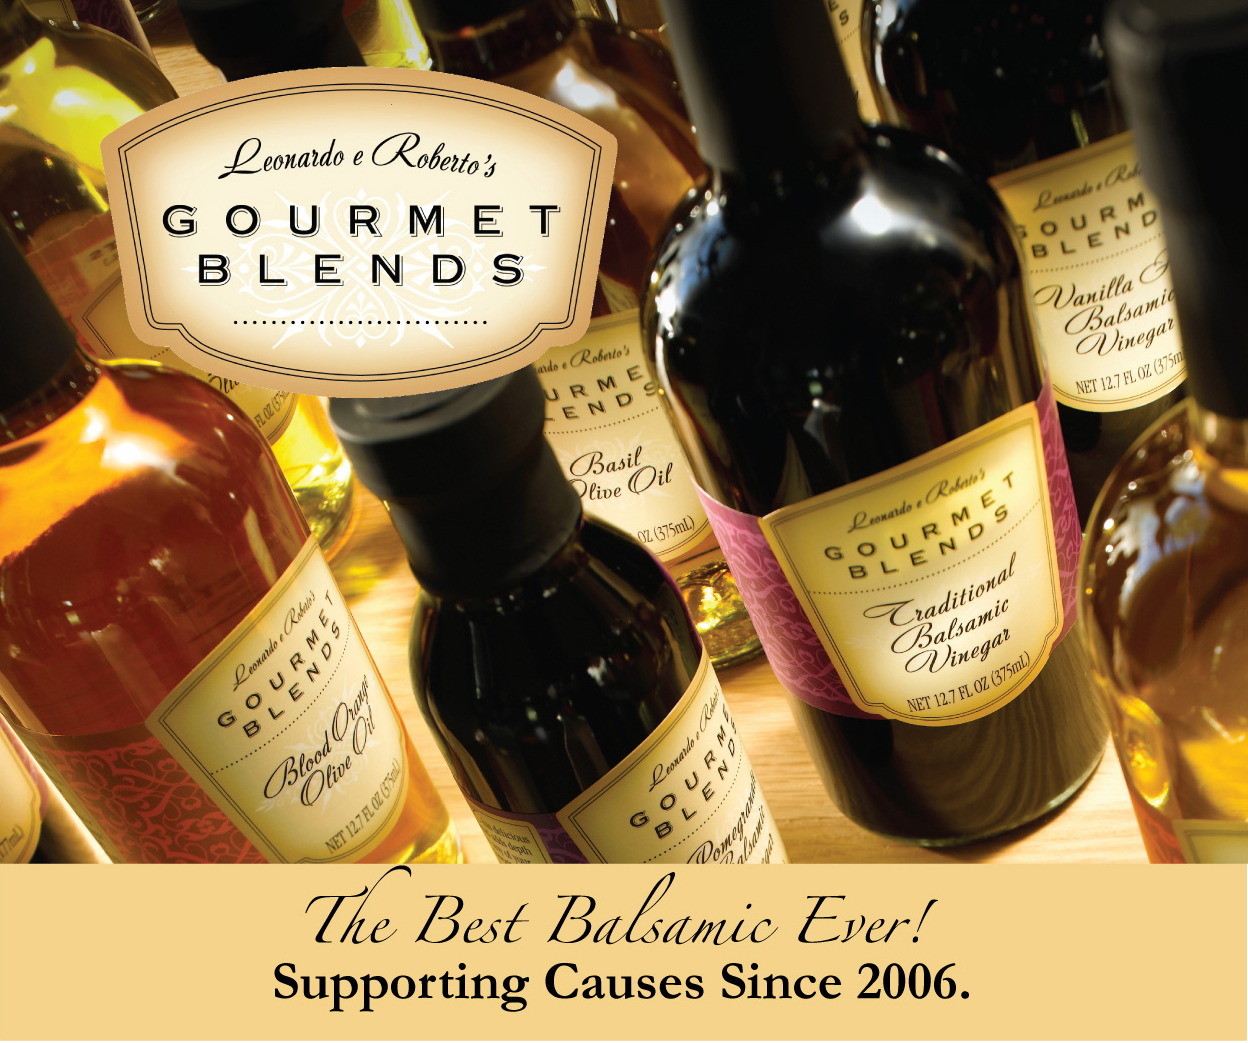 Gourmet Blends Traditional Balsamic Vinegar since 2006